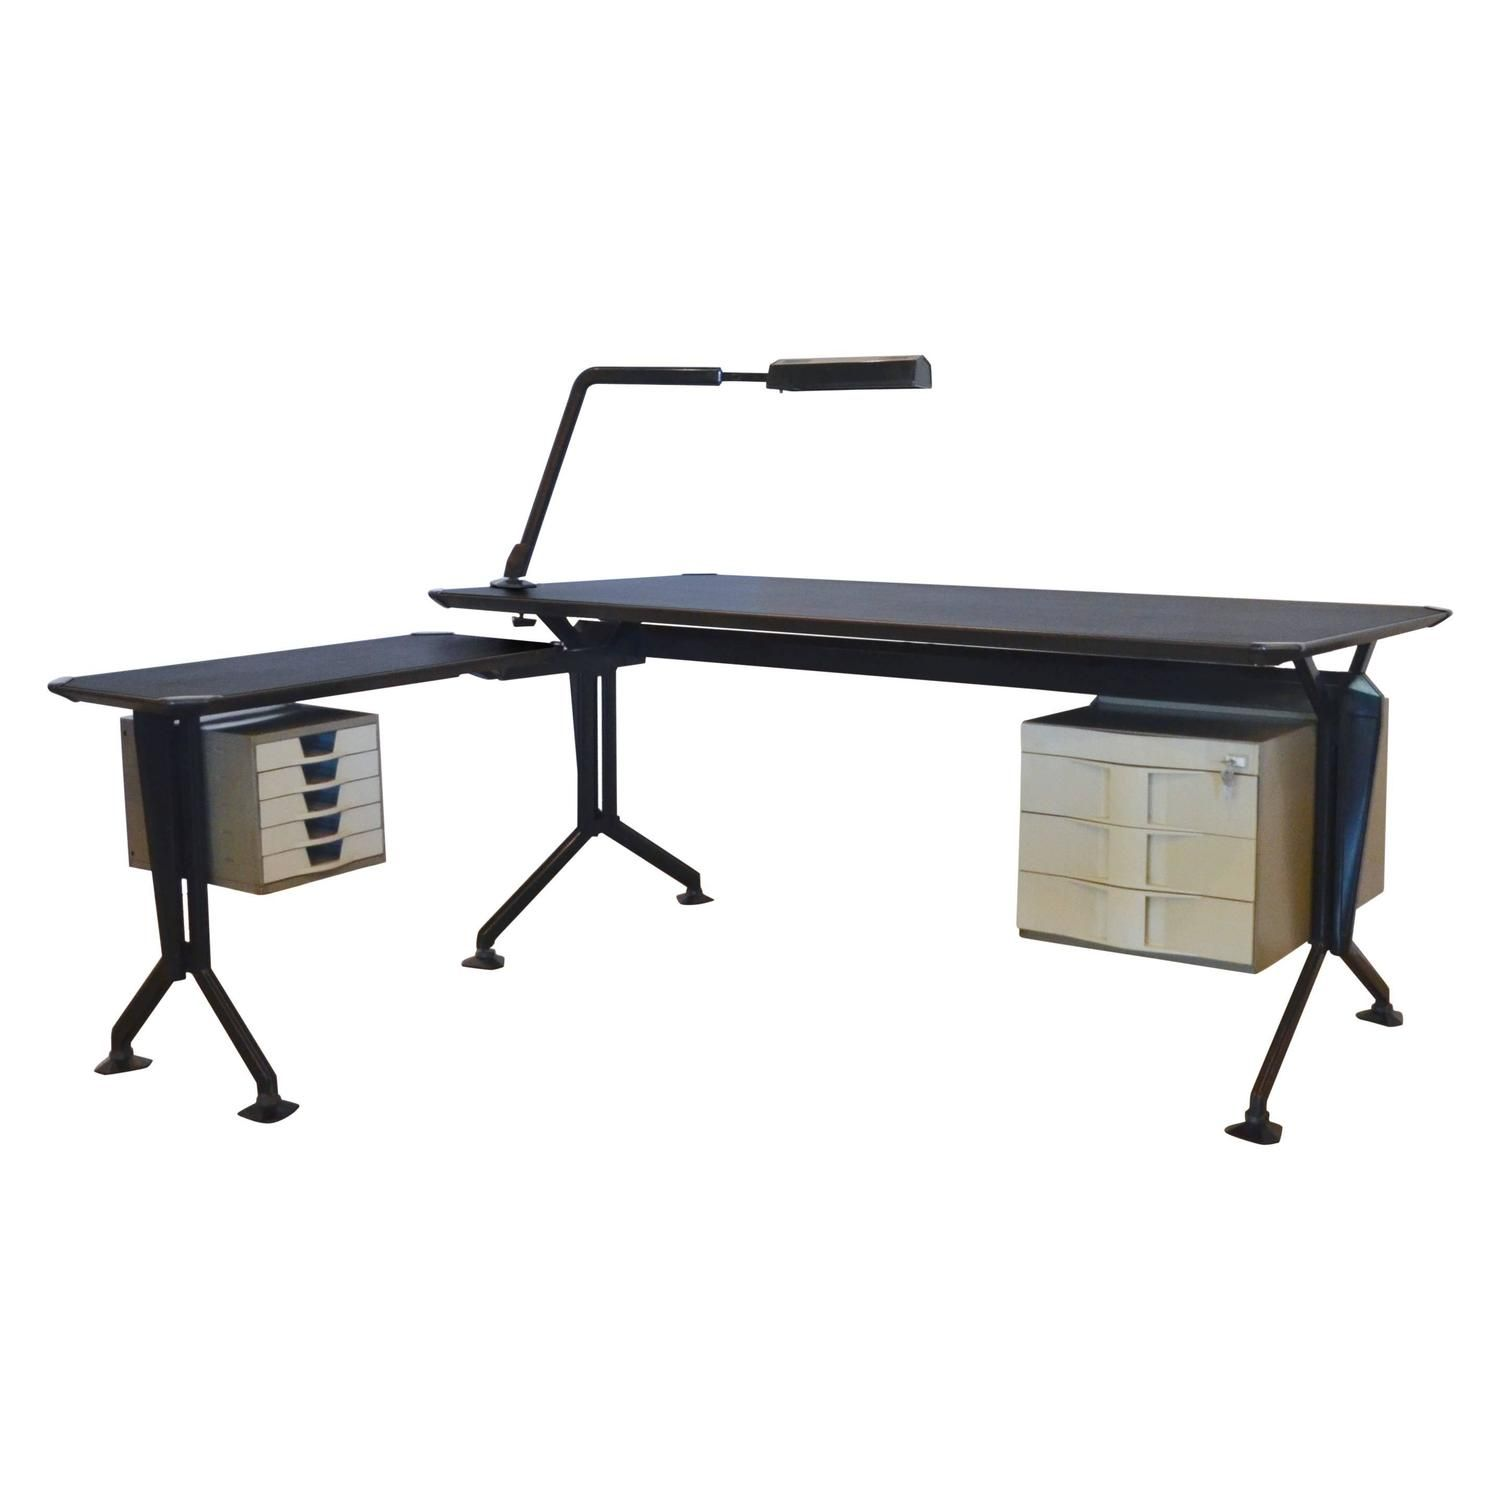 Olivetti Arco Desk with Return and Lamp